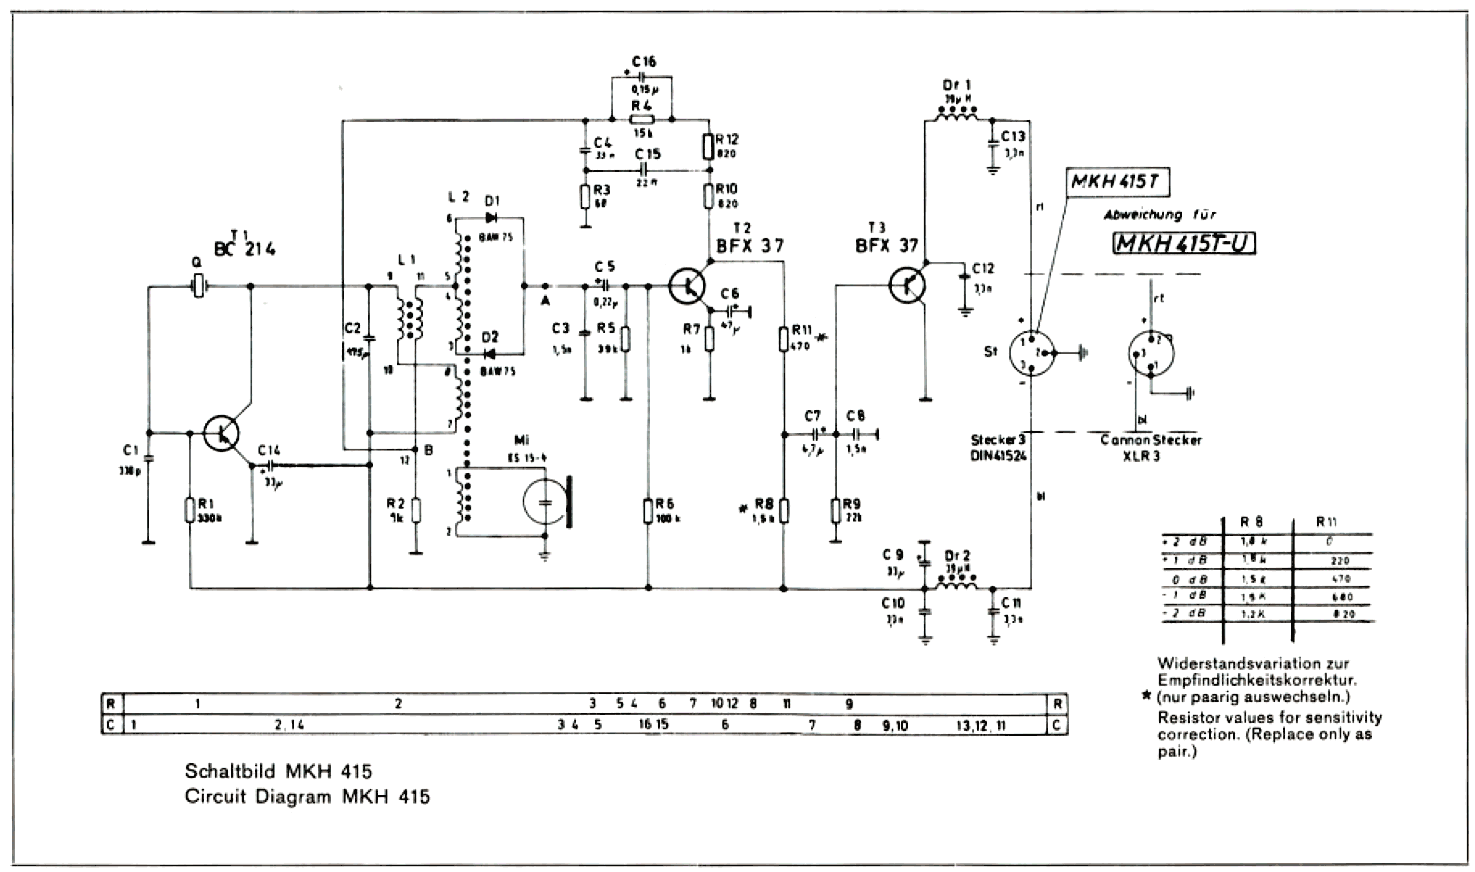 Sennheiser Electronics Corporation Mkh 415 T Circuit Diagram Xml